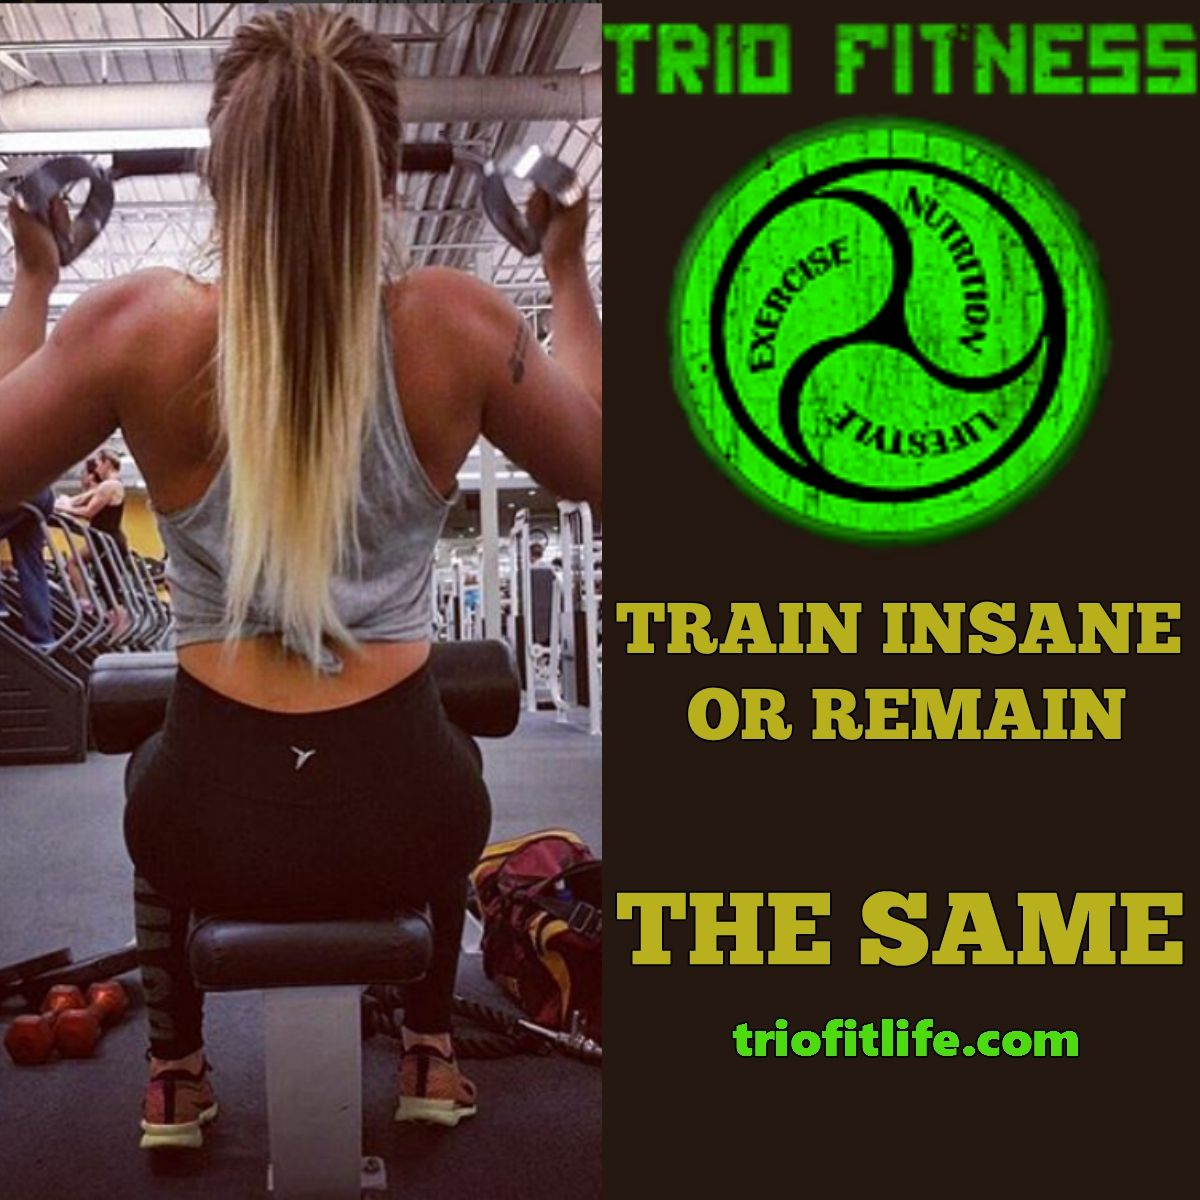 Pin By Trio Fitness On Fitness Train Insane Or Remain The Same Fitness Athlete